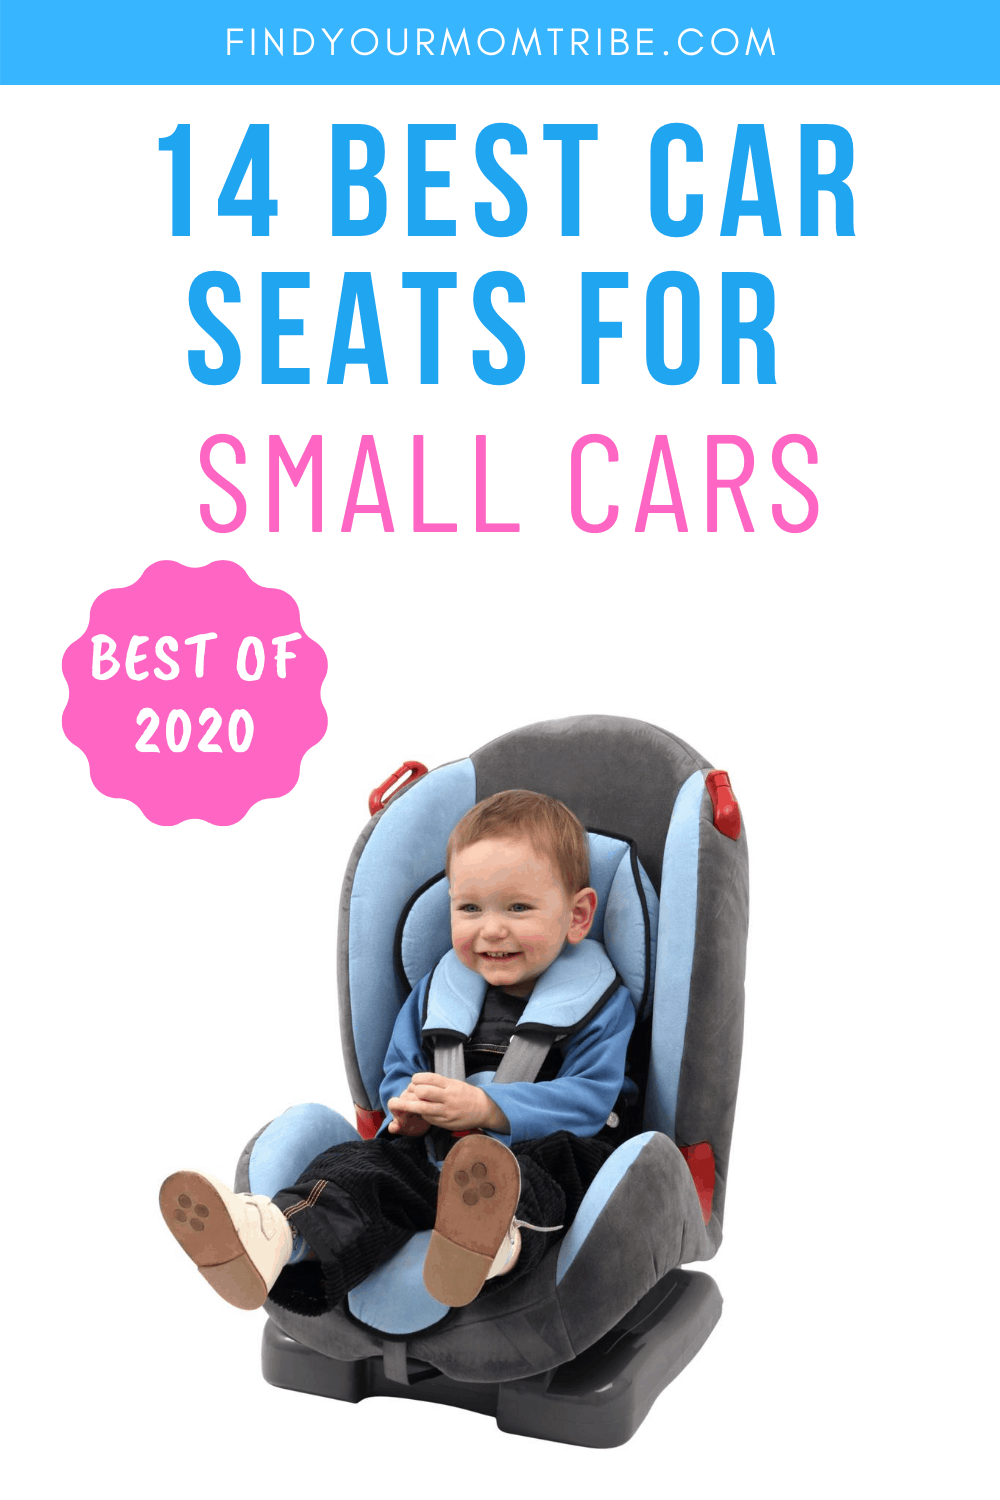 Pinterest best car seat for small cars